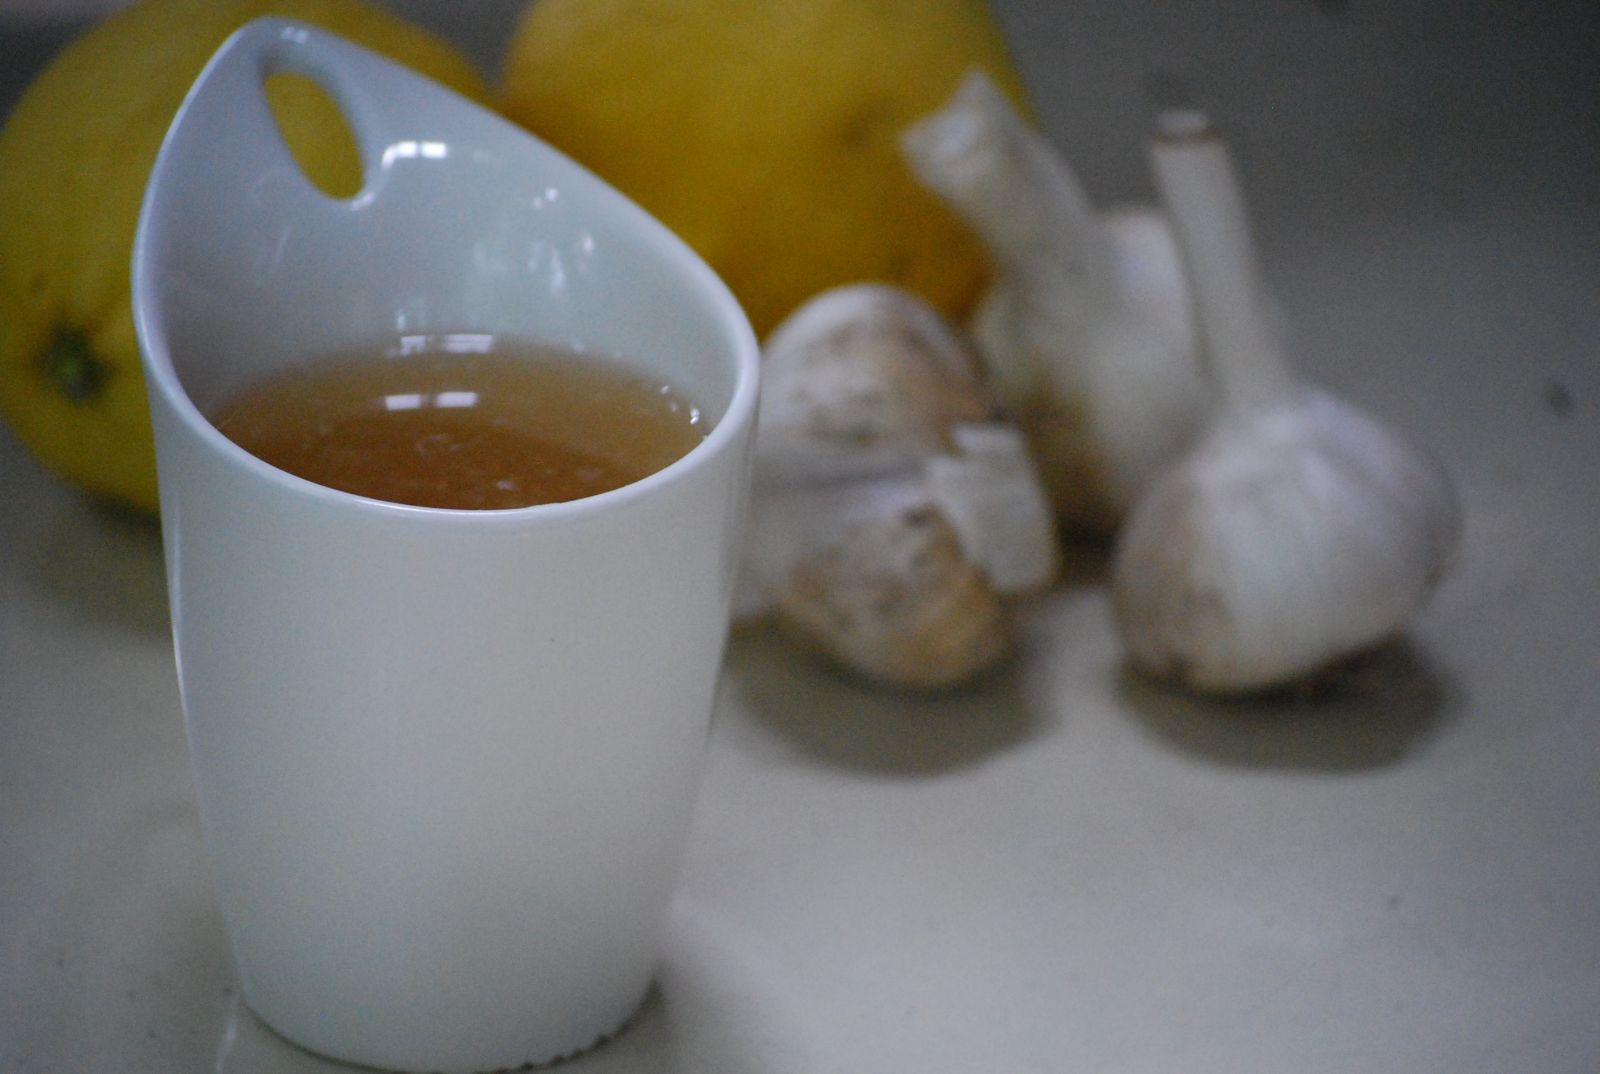 Ginger And&nbsp;Garlic Tea 